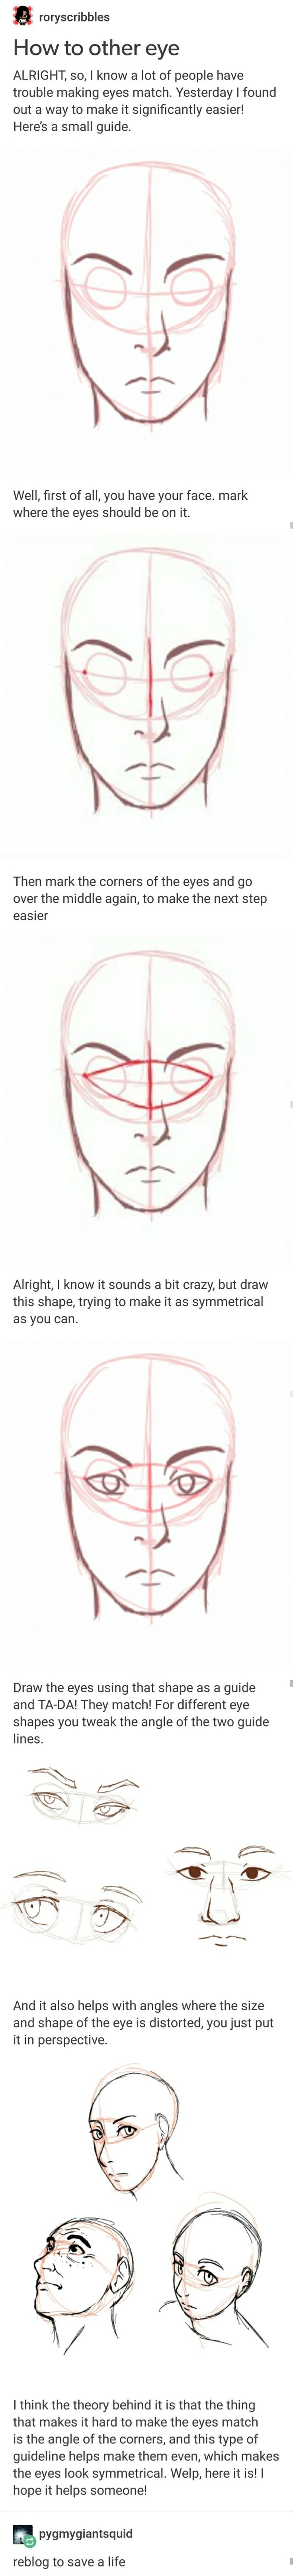 How to draw the second eye